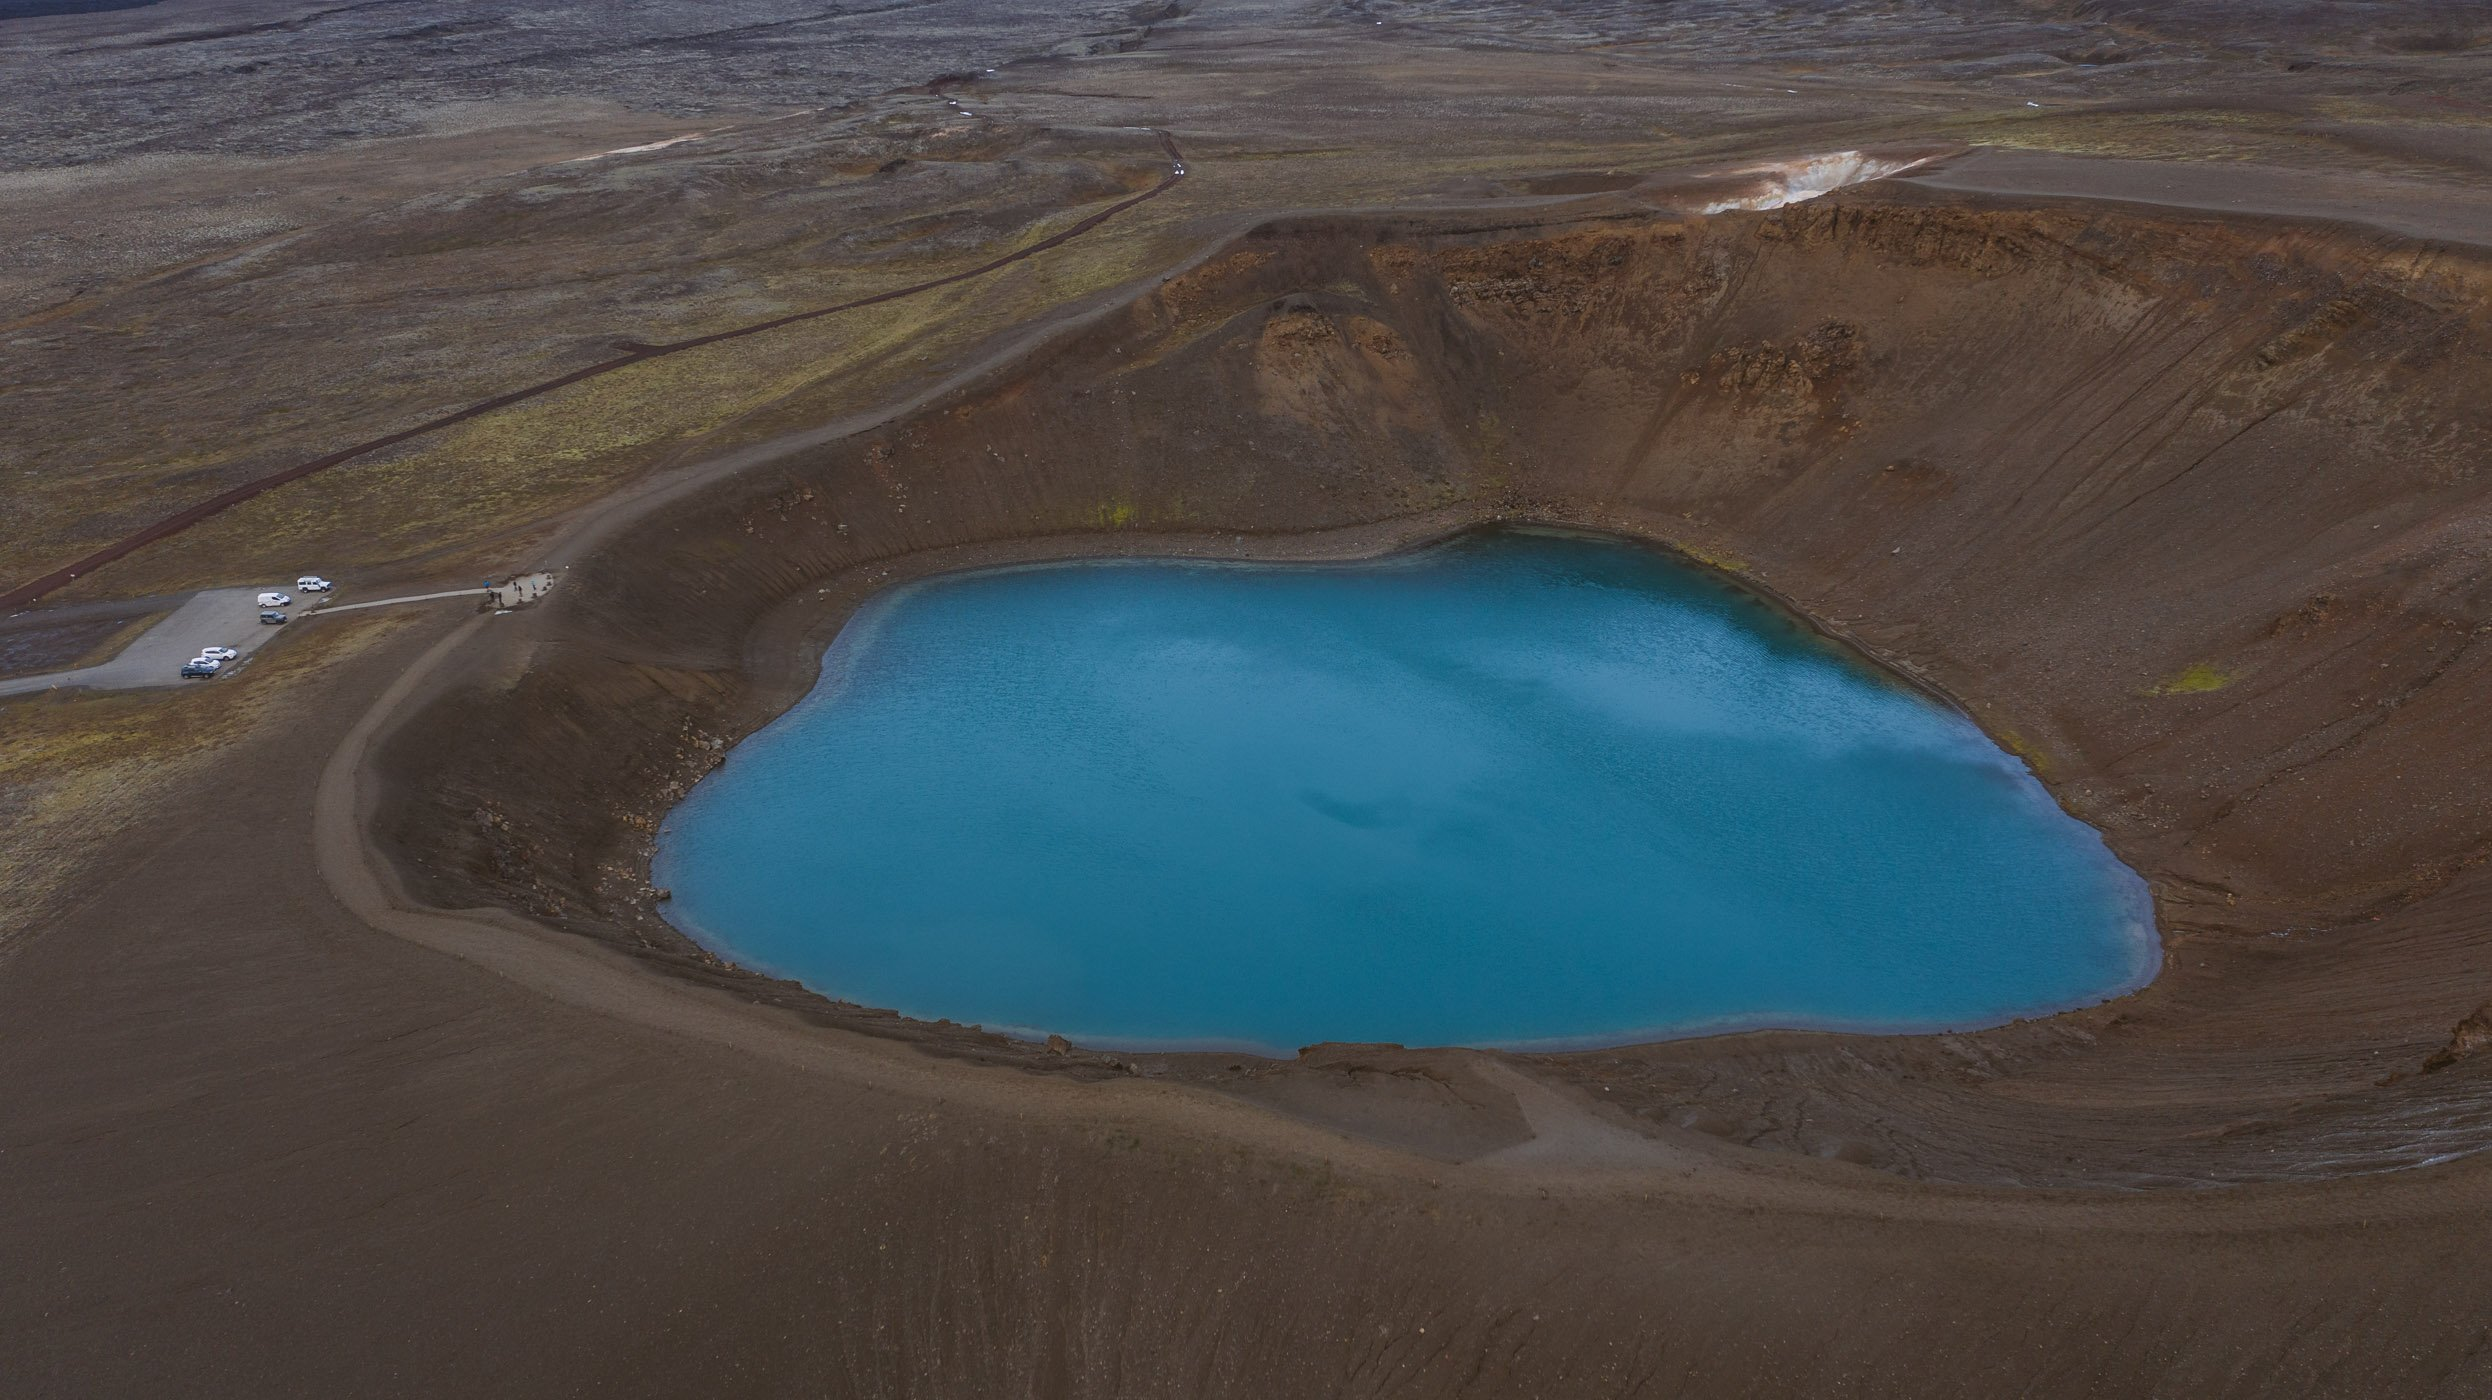 Krafla crater in Iceland